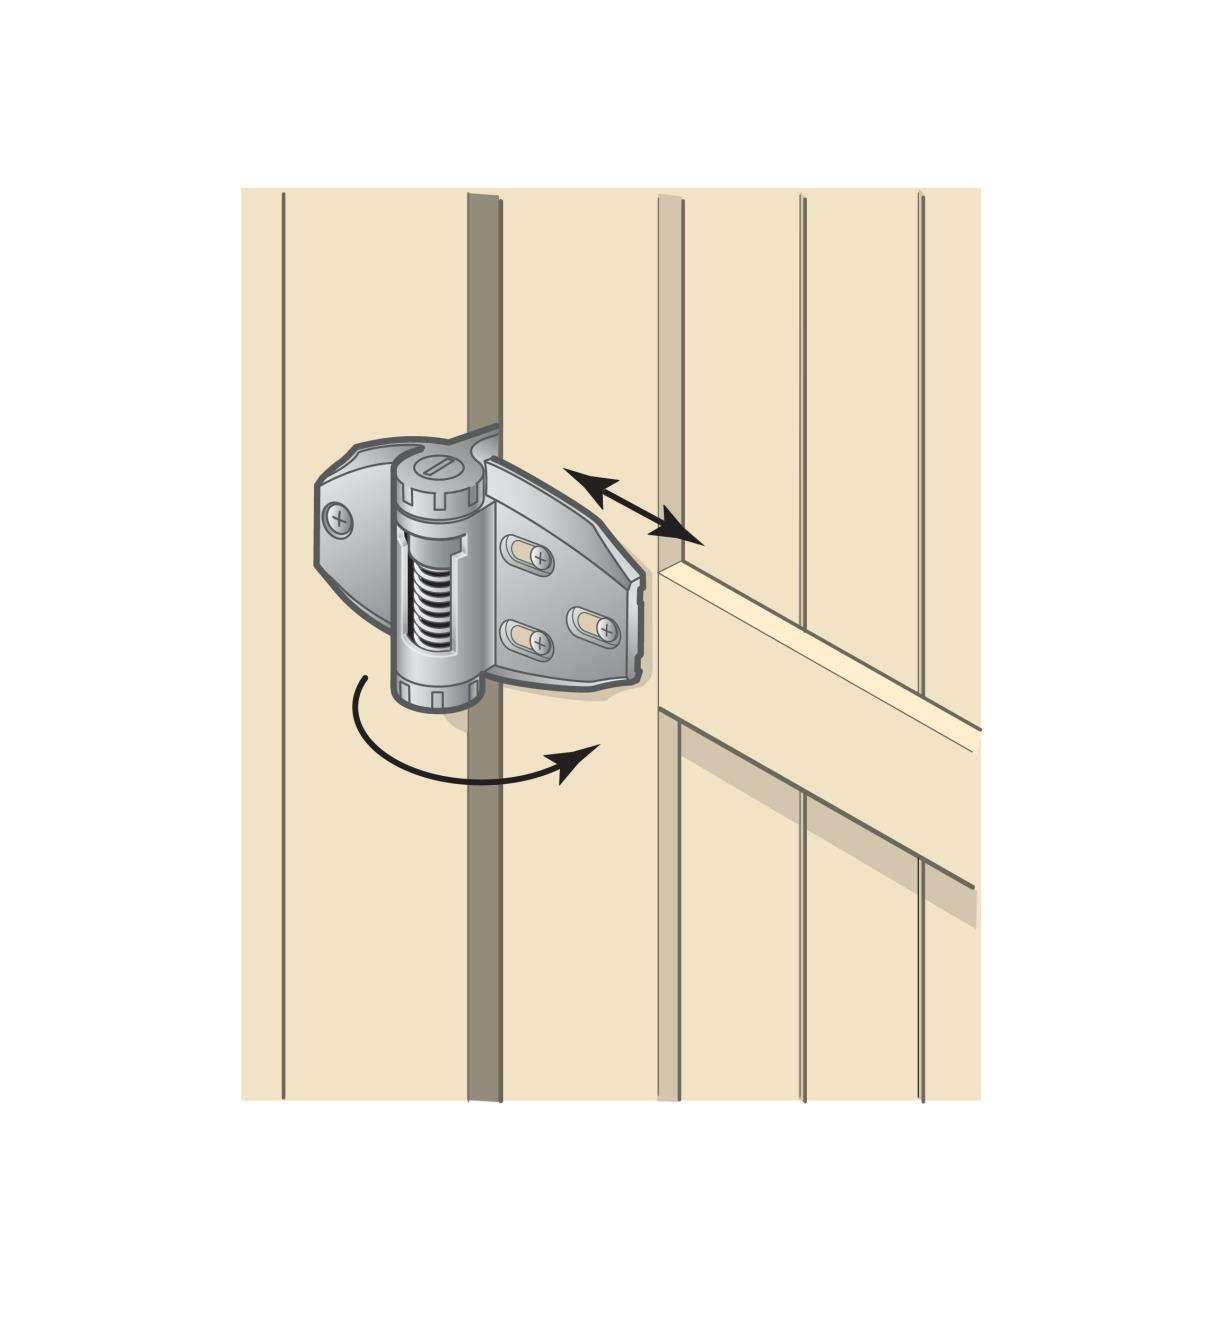 Illustration of standard hinge installed on a gate